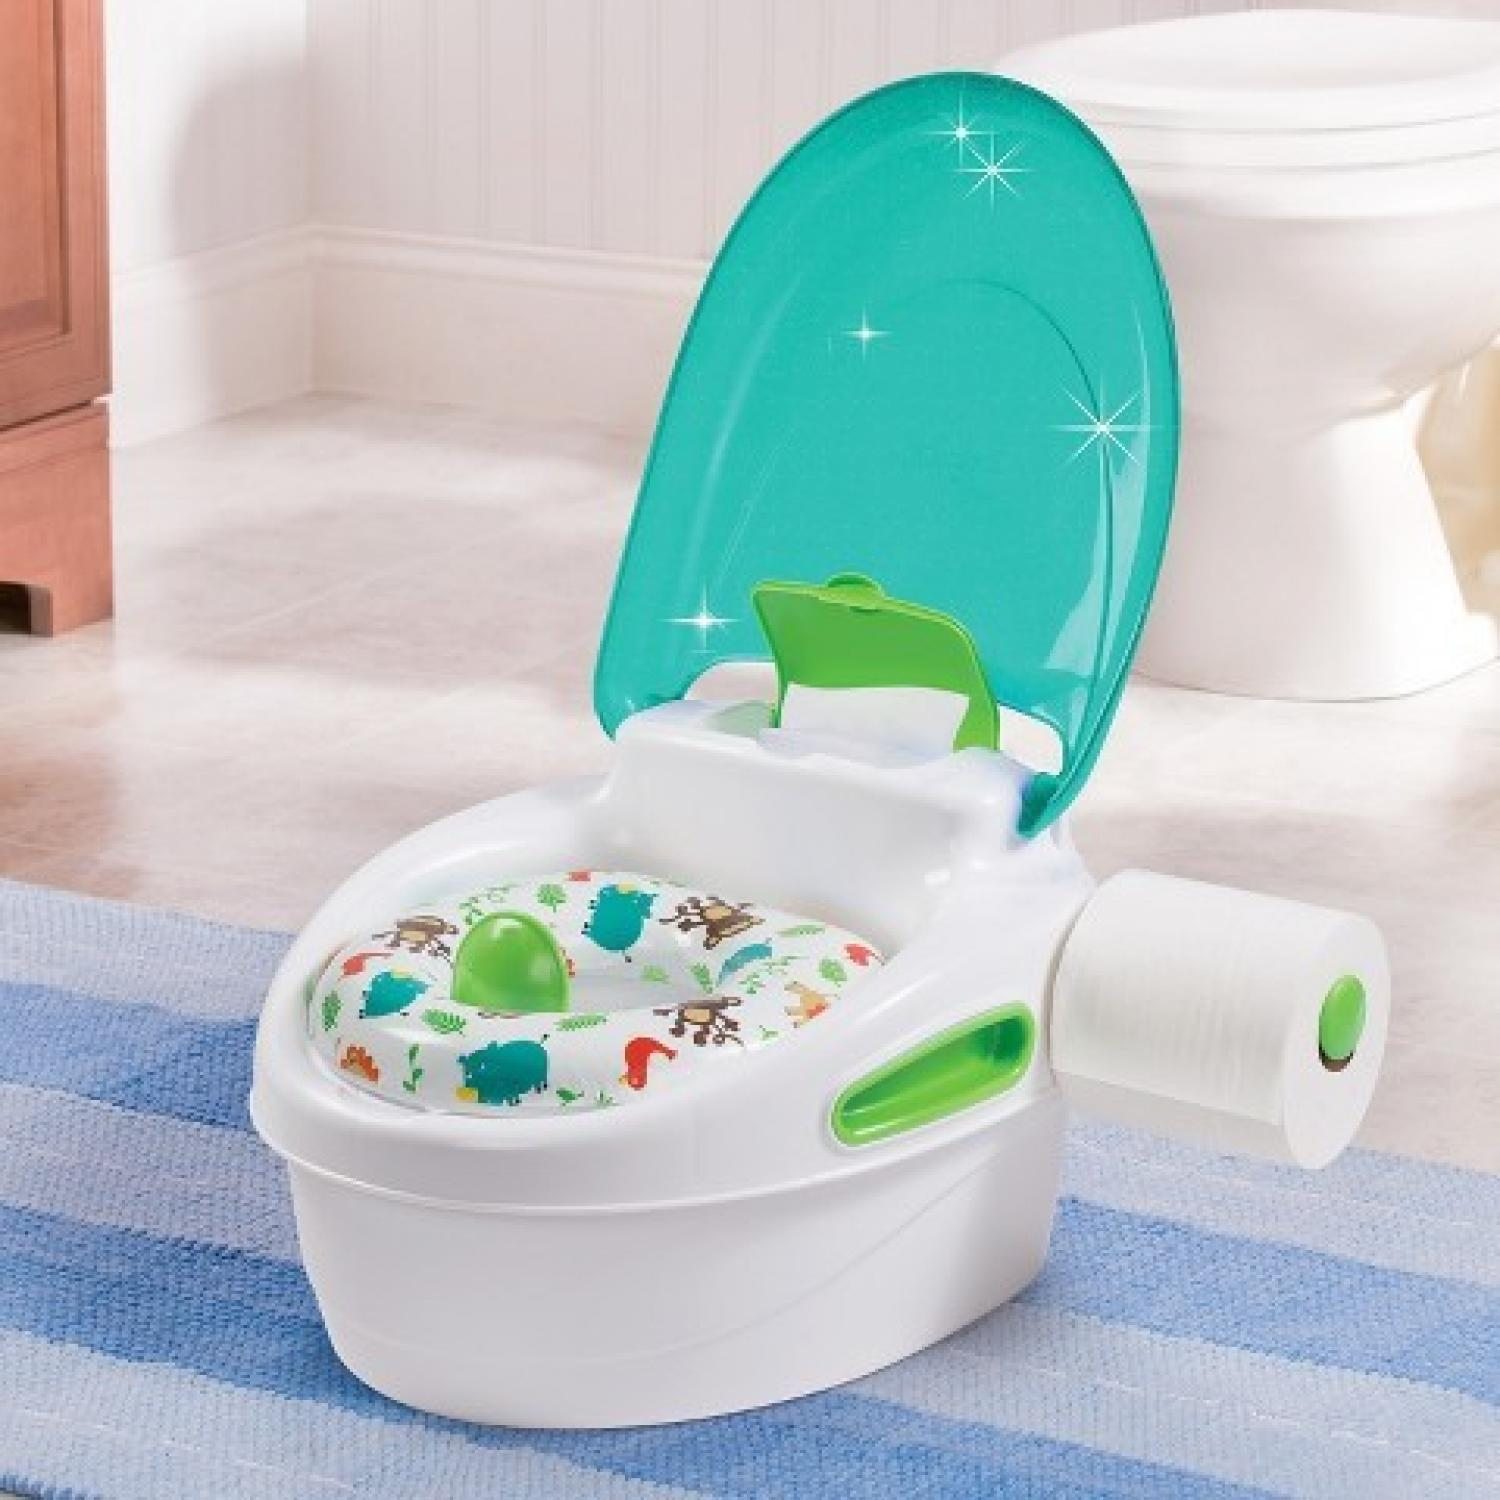 Best Potty Training Products